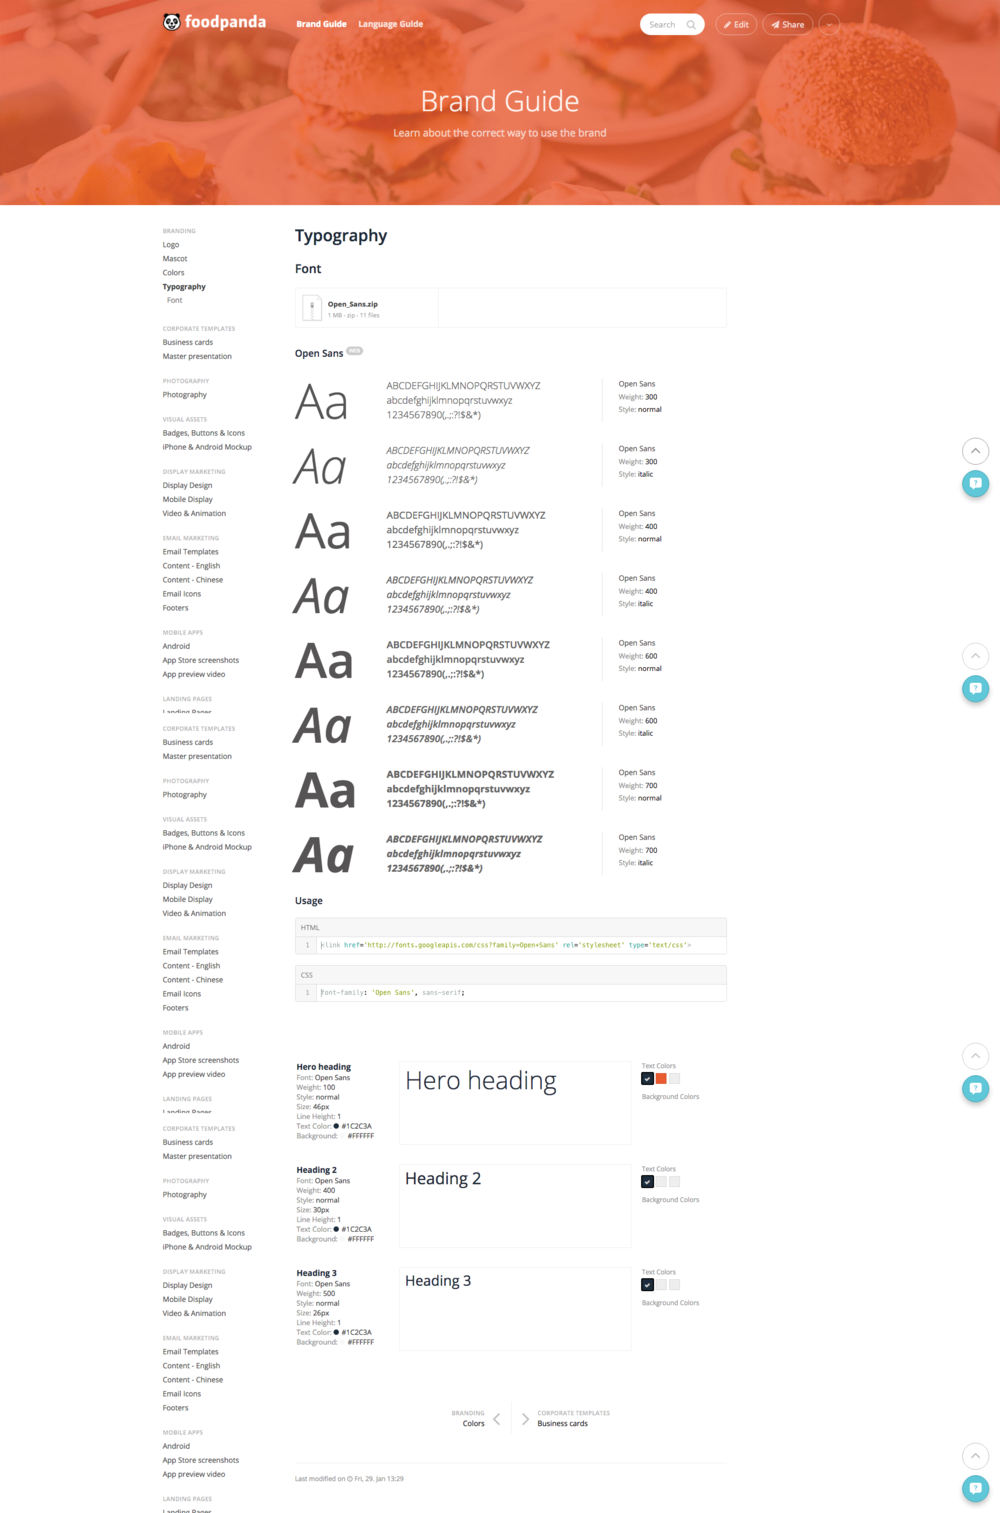 screencapture-app-frontify-com-d-YMT1a5mUOAnf-brand-guide-1464078544181.png